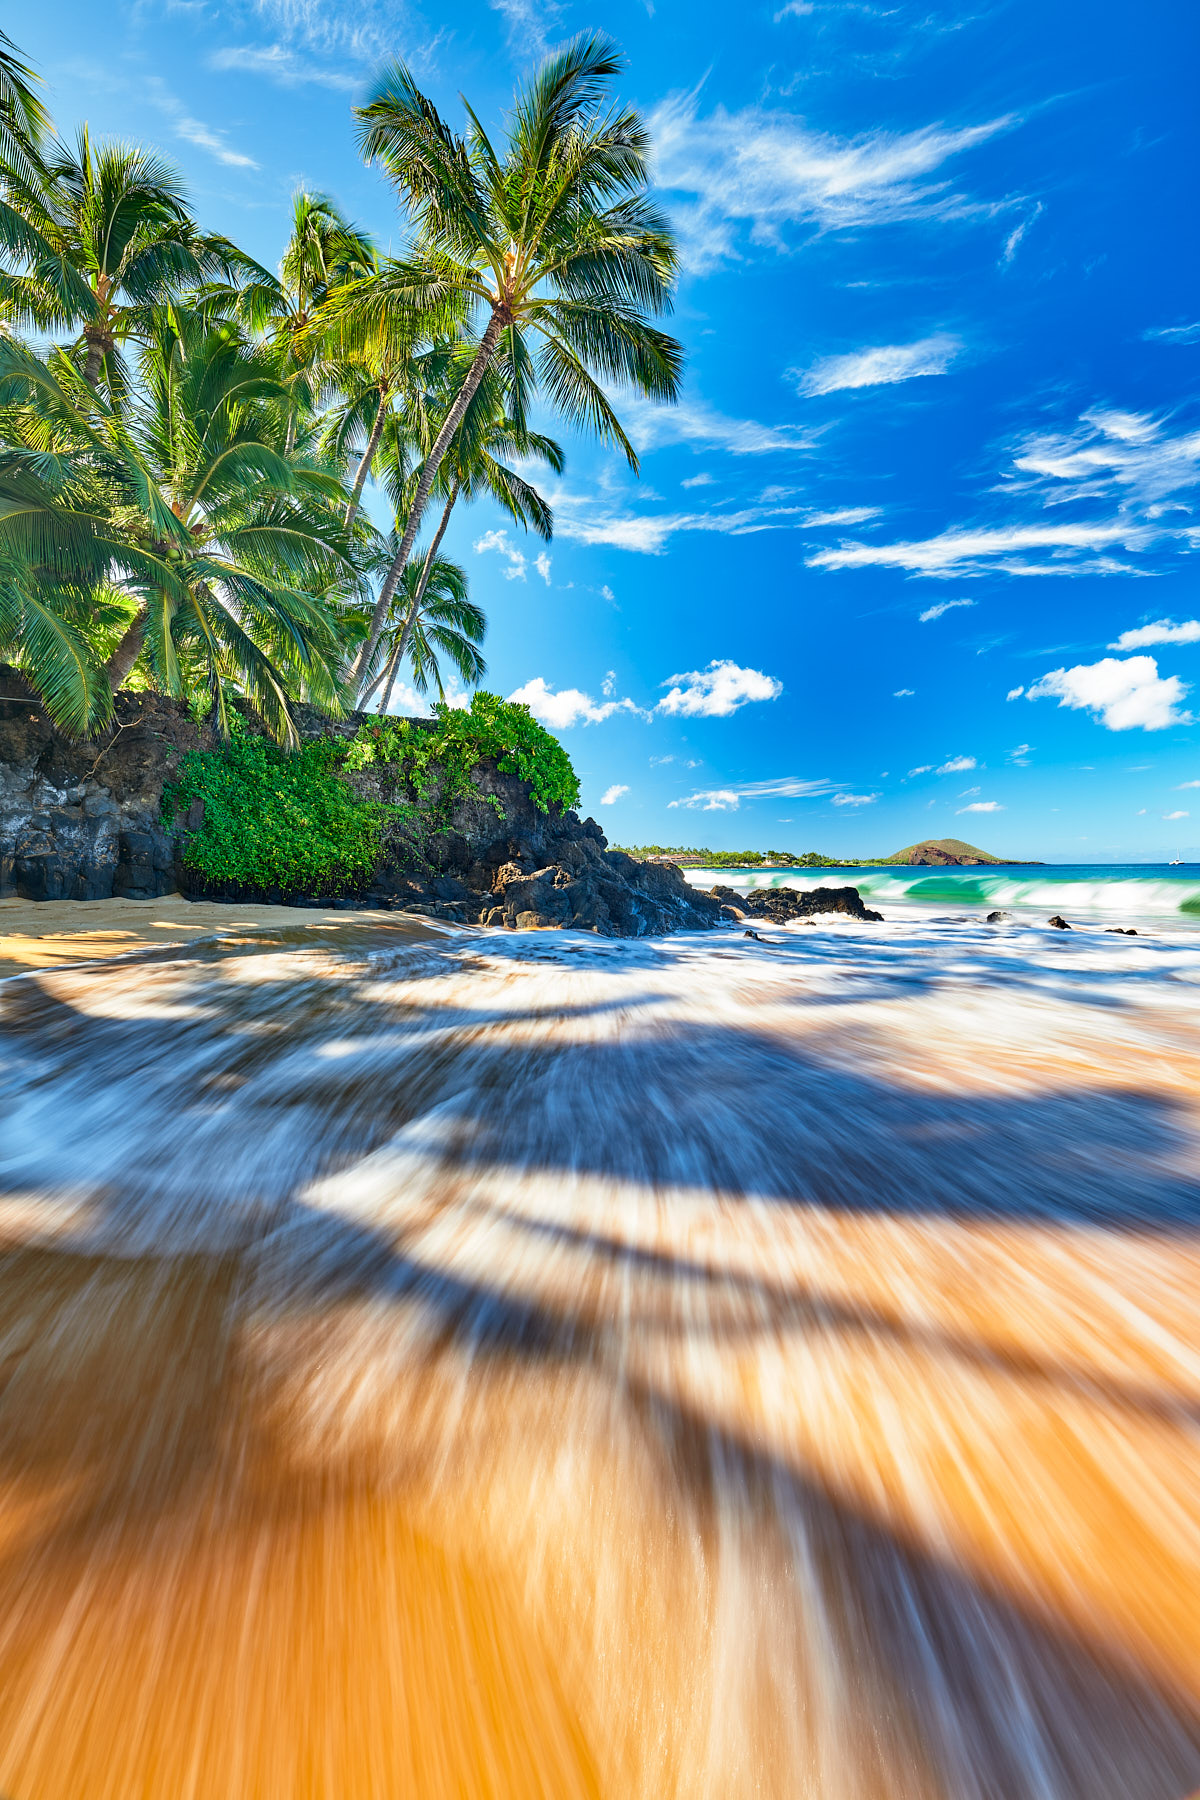 incoming waves at a small secret cove make a beautiful morning scene with coconut palms sticking out from the land in Makena, Maui